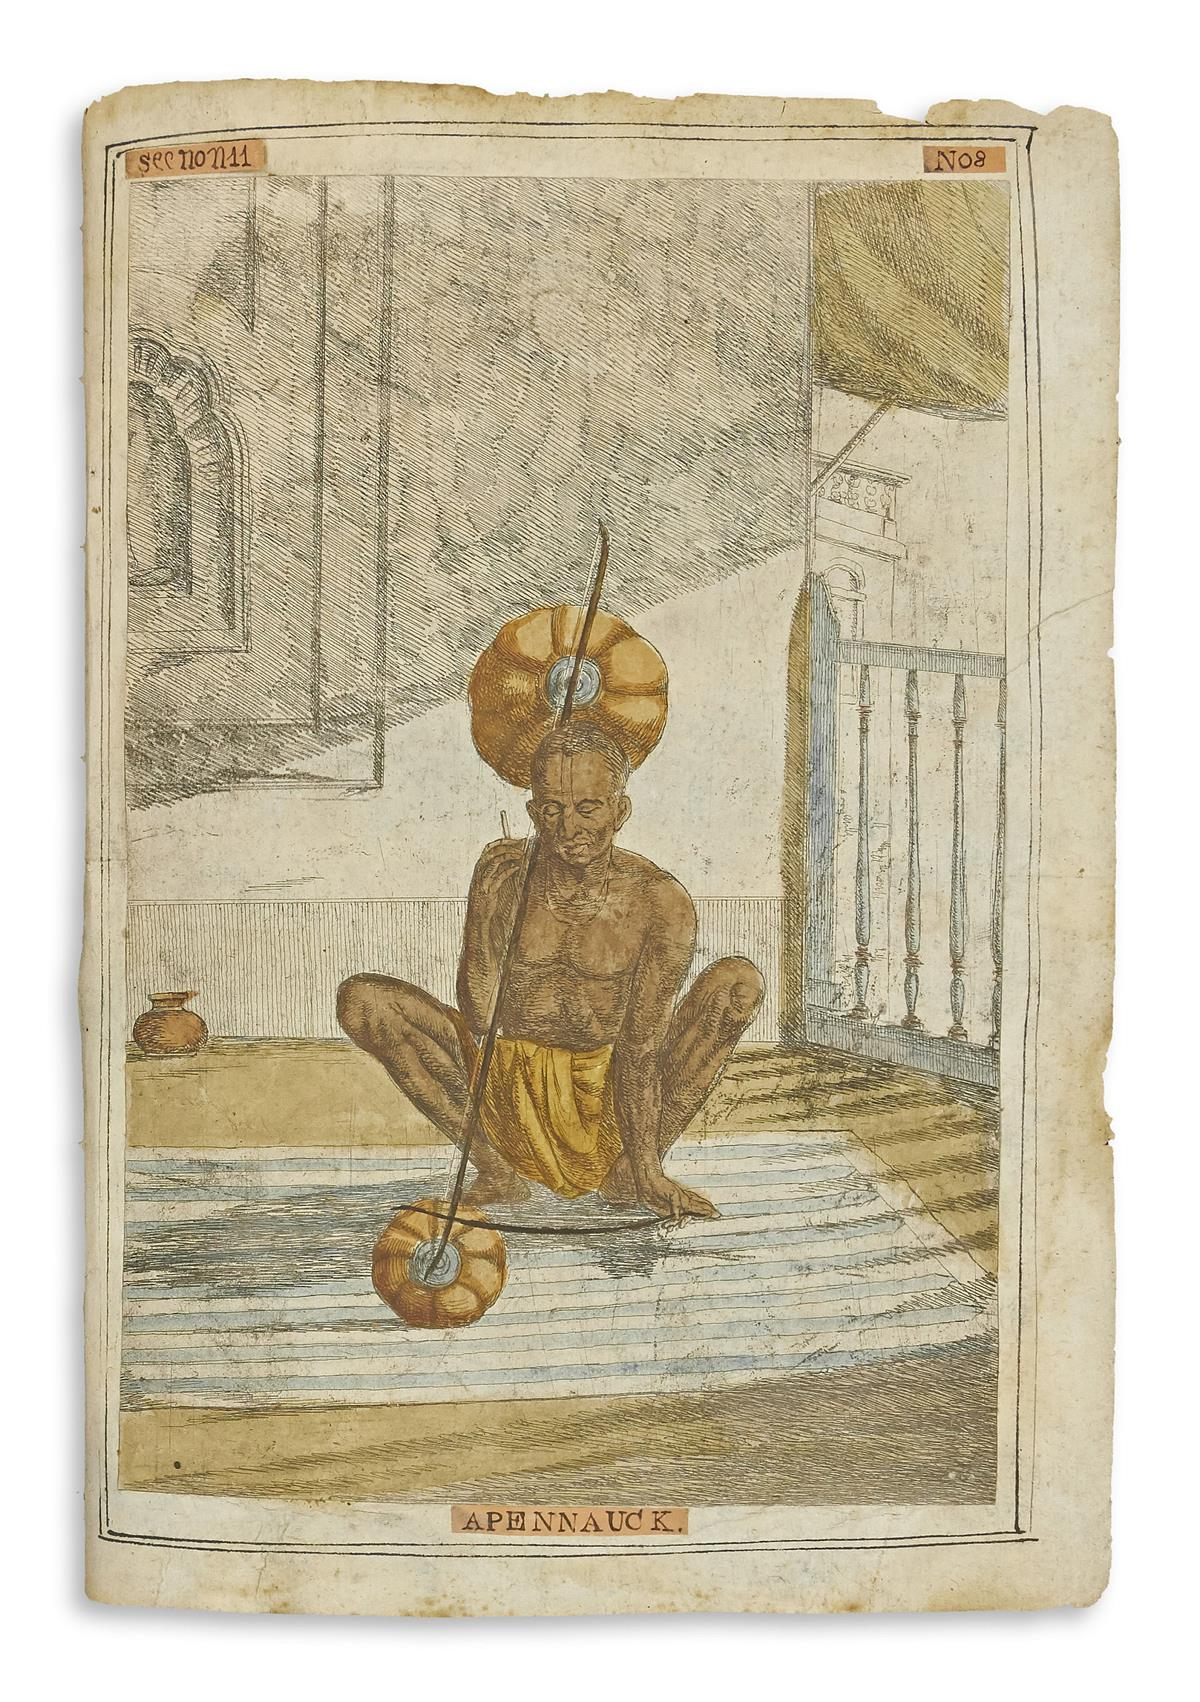 (INDIA.) Solvyns, Frans Balthazar. [A Collection of Two-Hundred and Fifty Colored Etchings Descriptive of the Manners,